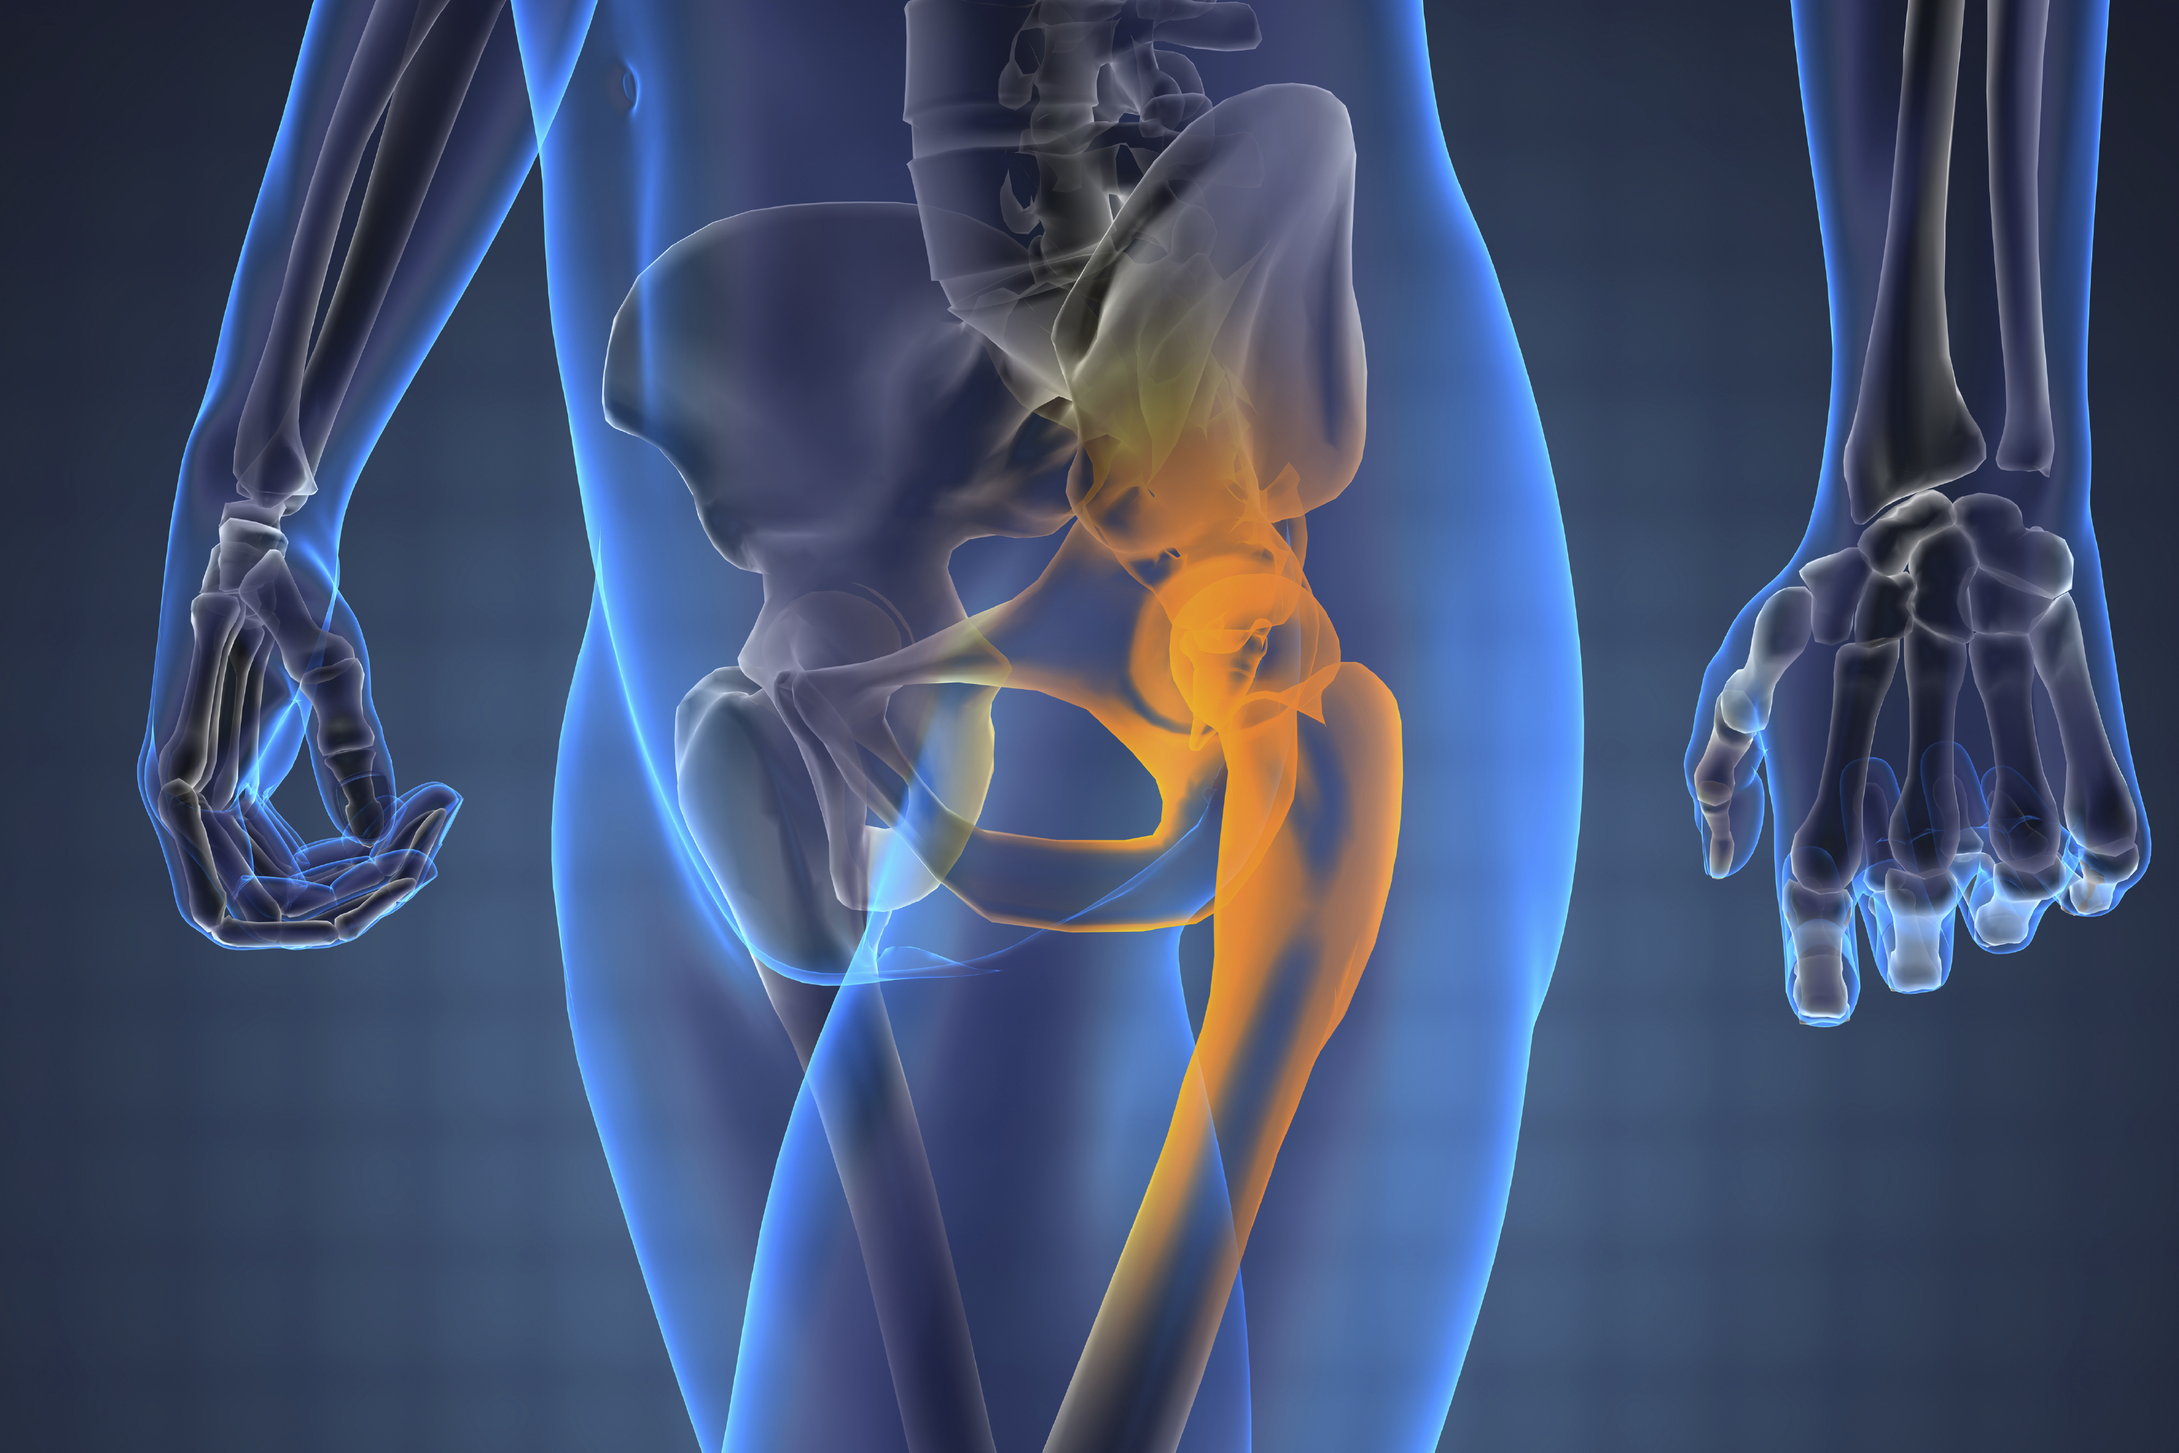 Imbalance and misalignment causes wear and tear on the hip joint